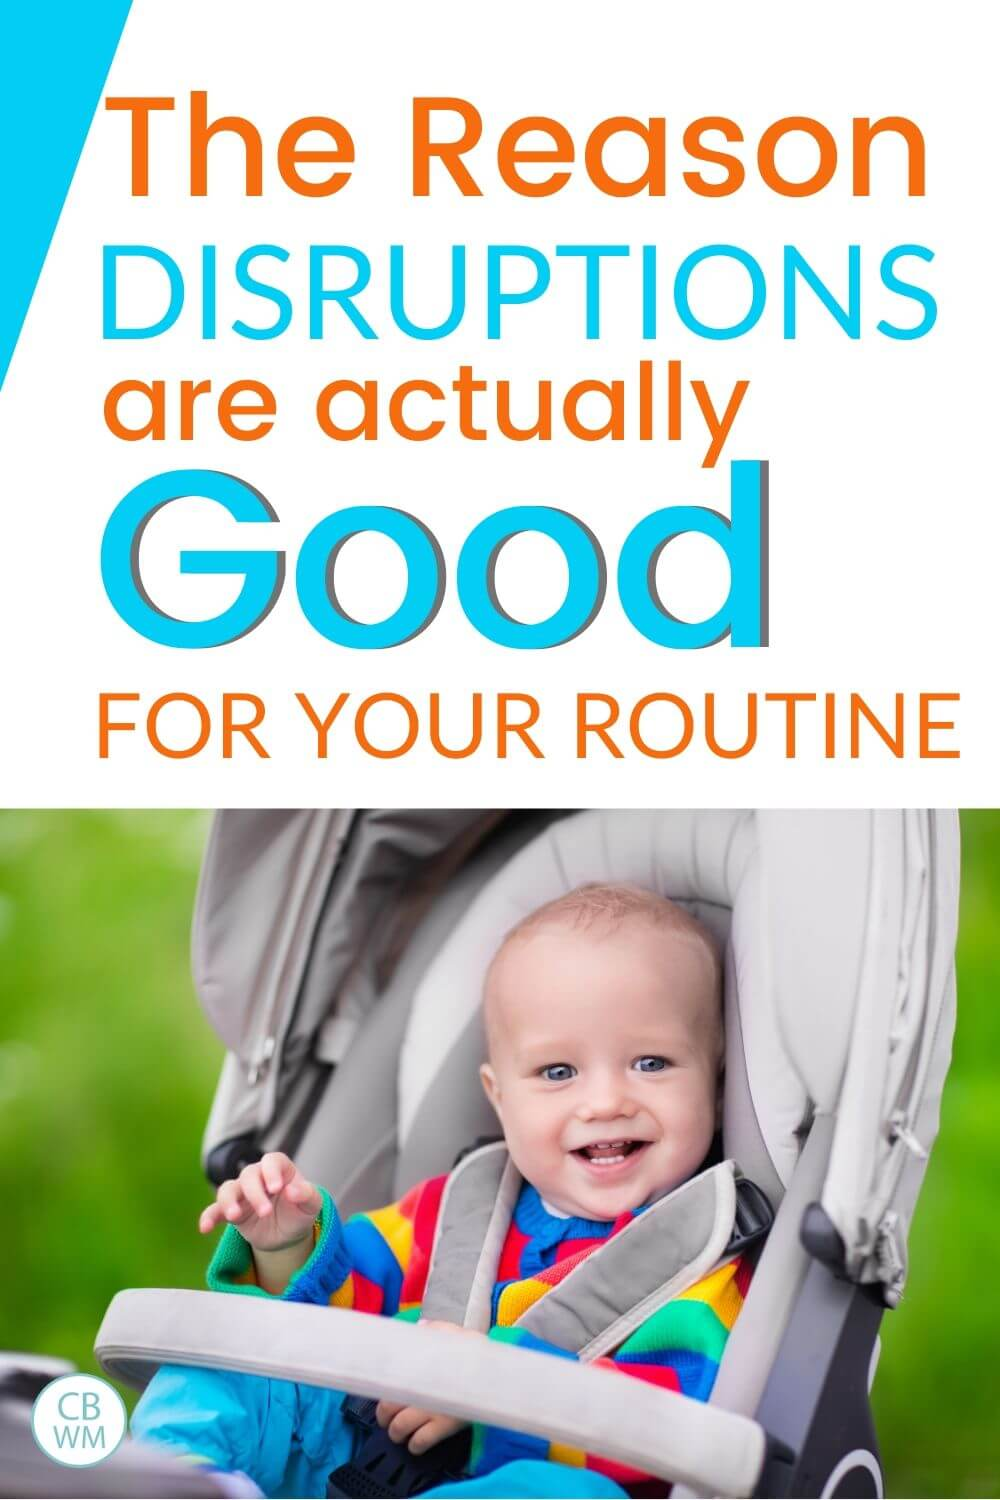 The reason disruptions are good for your routine pinnable image